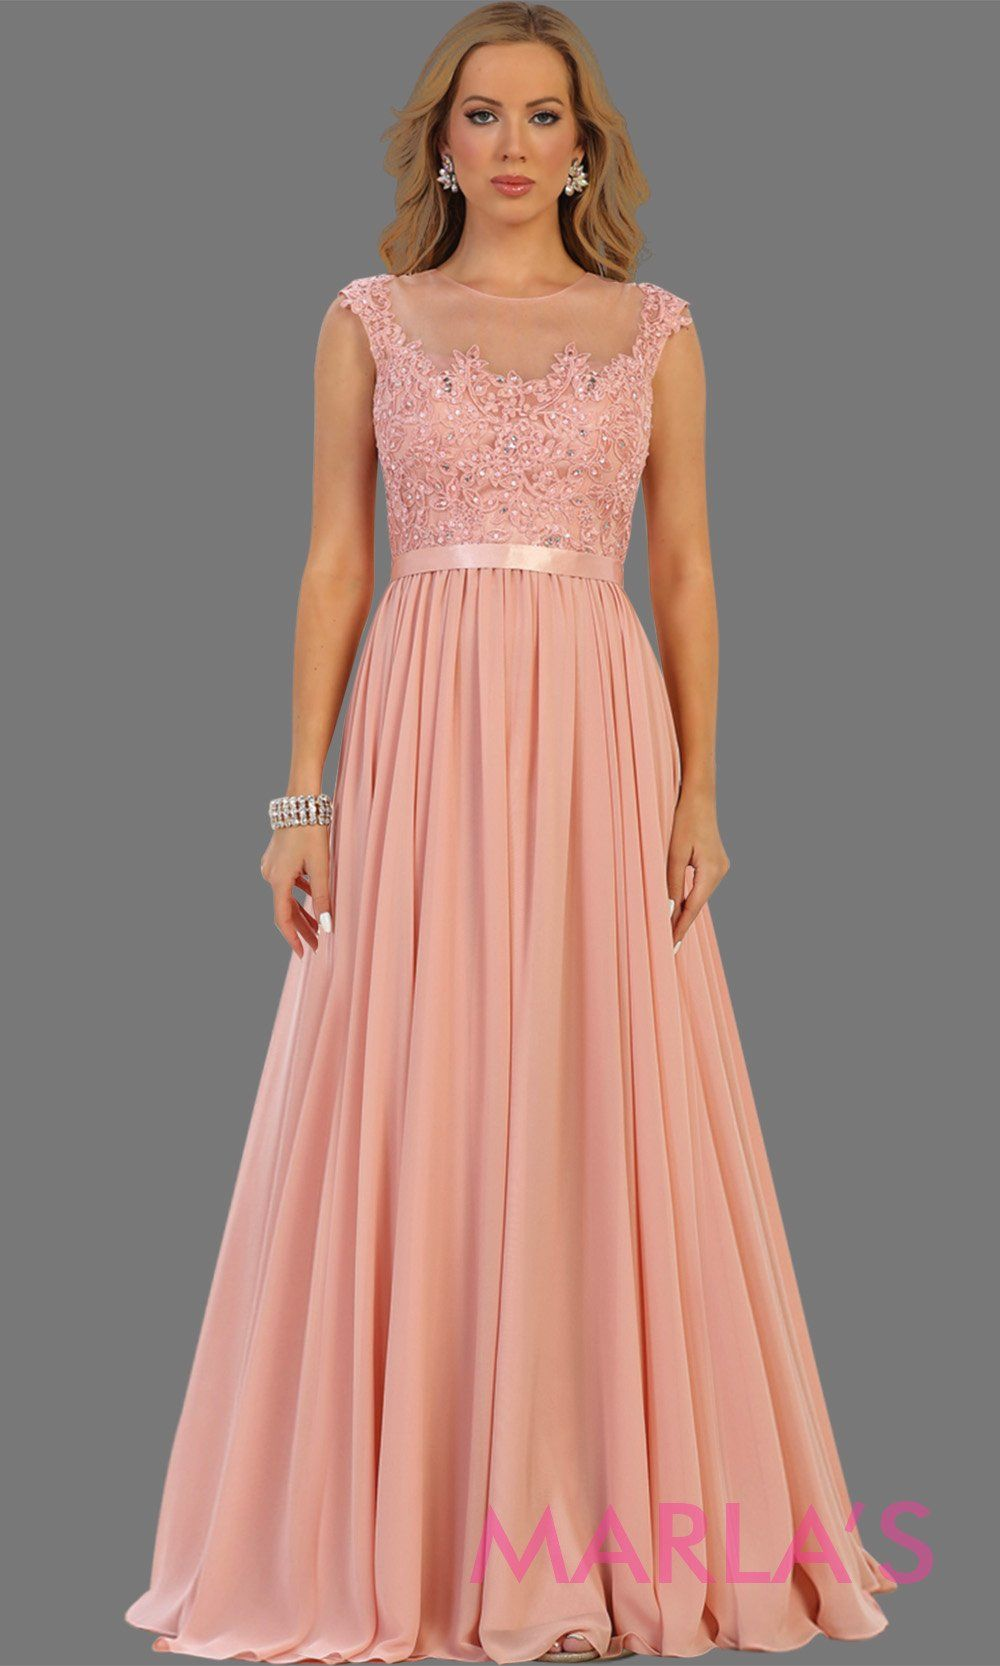 146cc5a3a57 long blush pink dress with sheer lace bodice. It has a lace illusion  neckline and